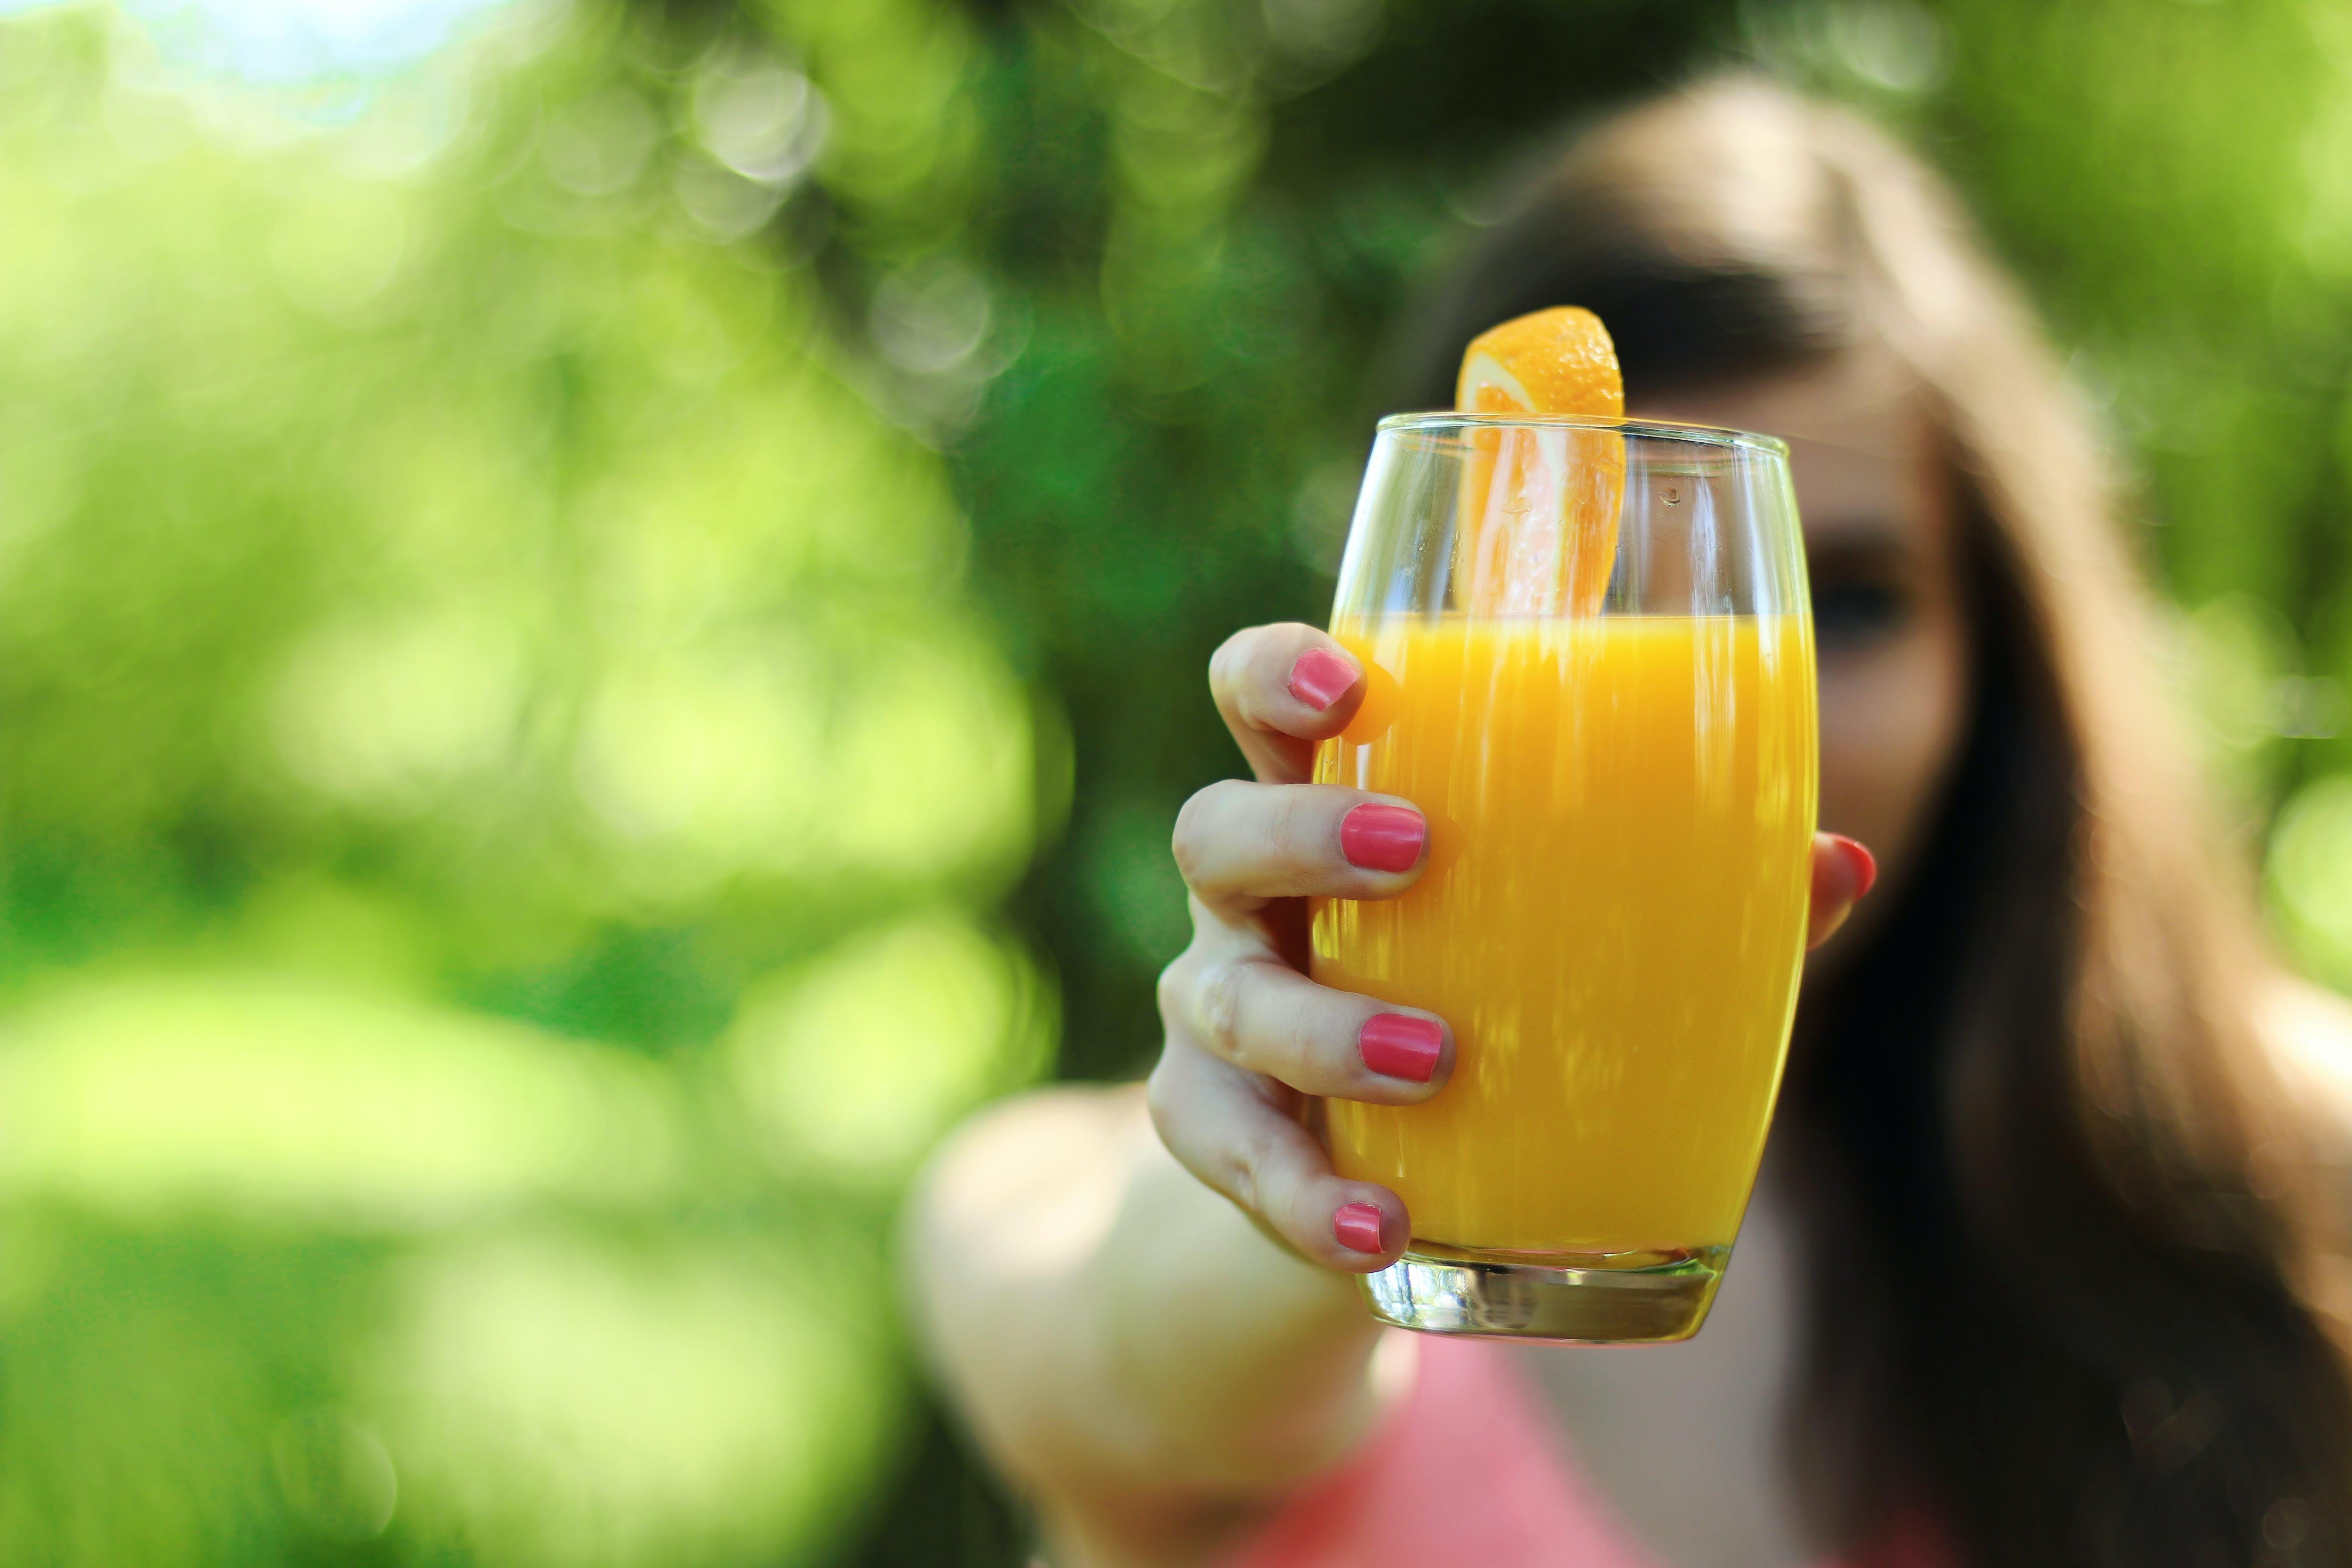 Woman in Pink Top Holding Orange Juice in Glass Cupo